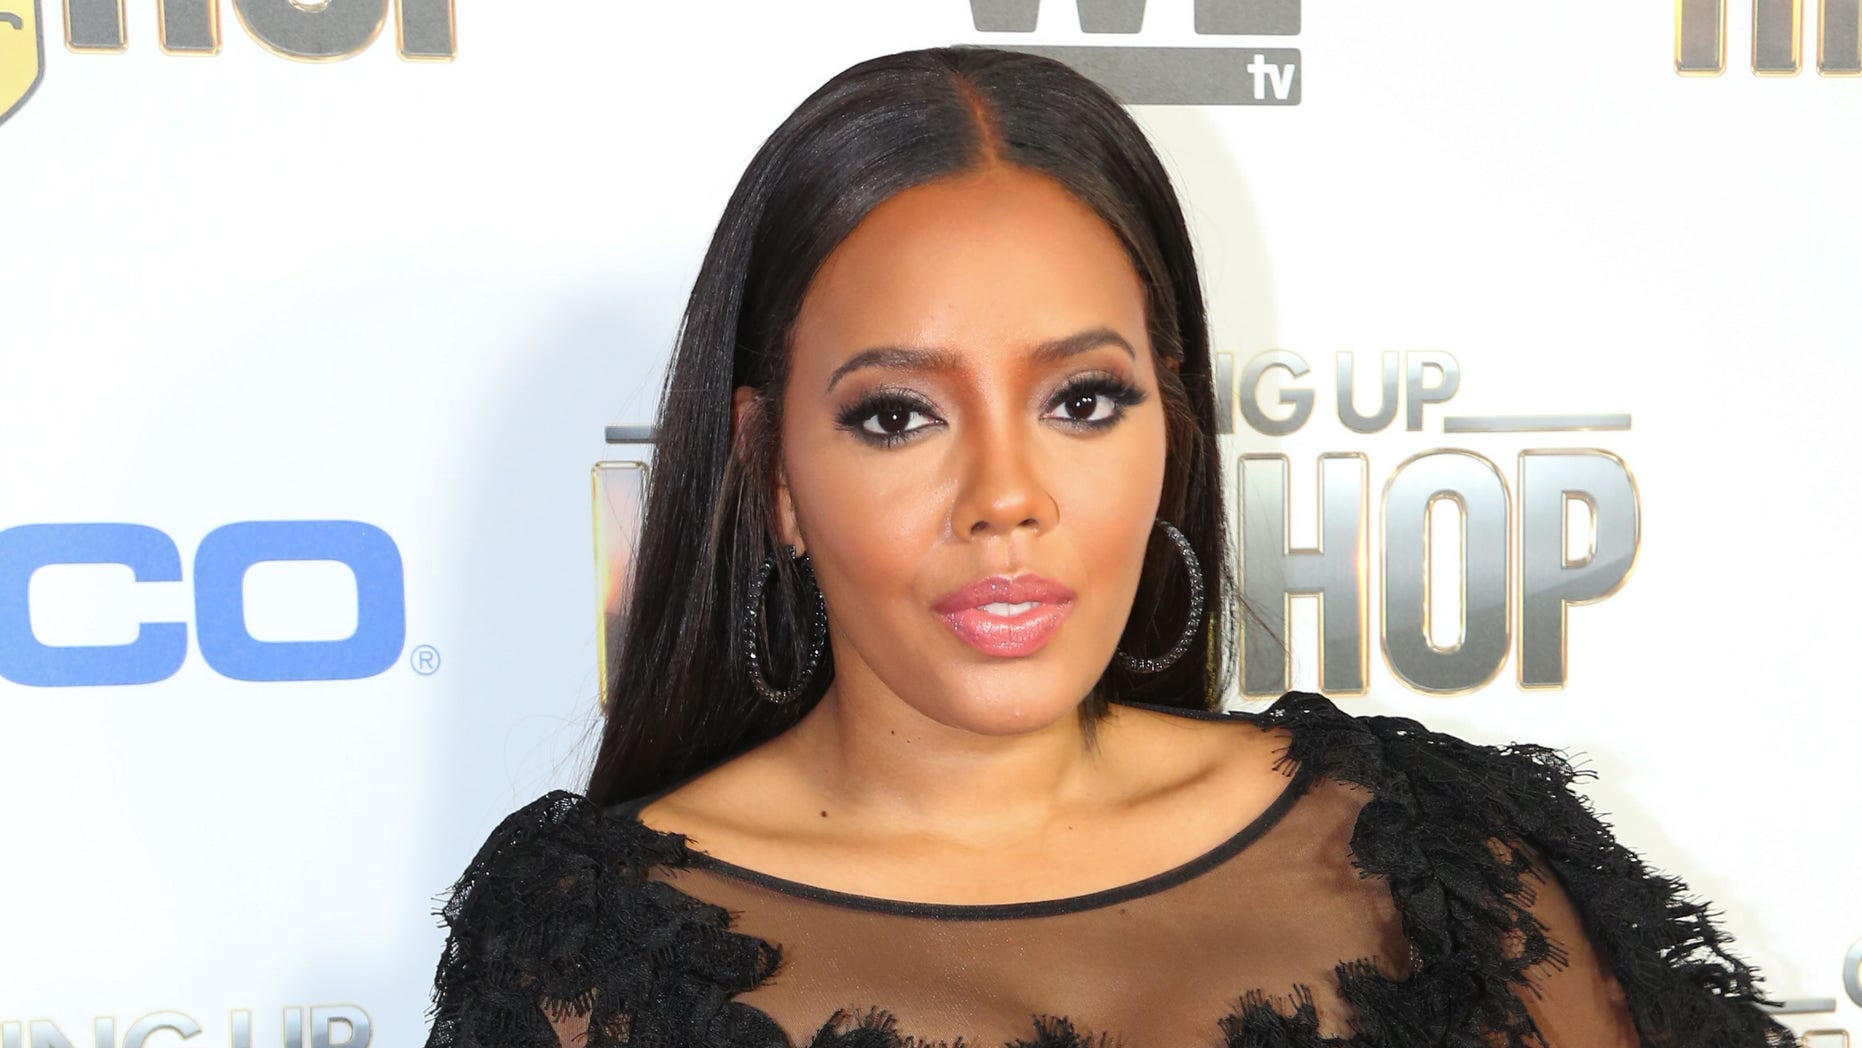 Angela Simmons shares heartfelt message to deceased ex-fiancé Sutton Tennyson